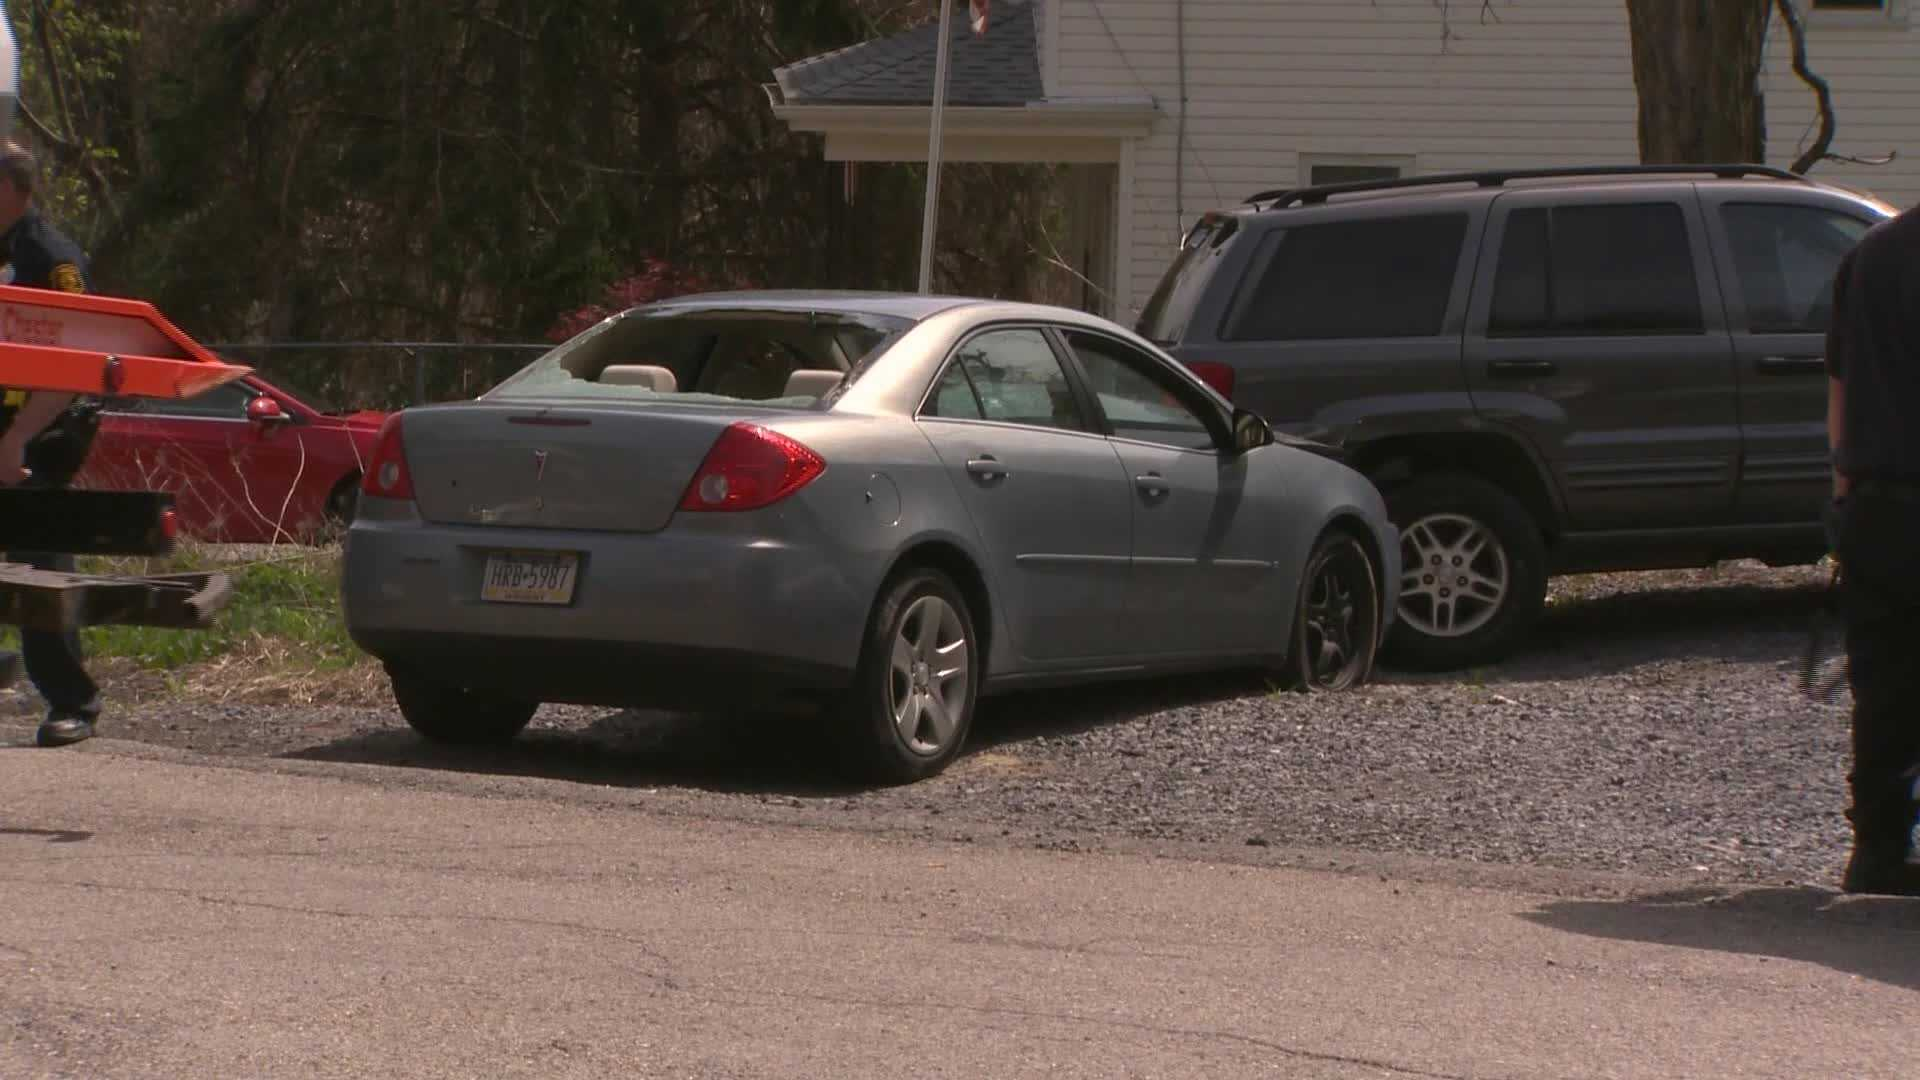 img-Police investigating double shooting in Perry South